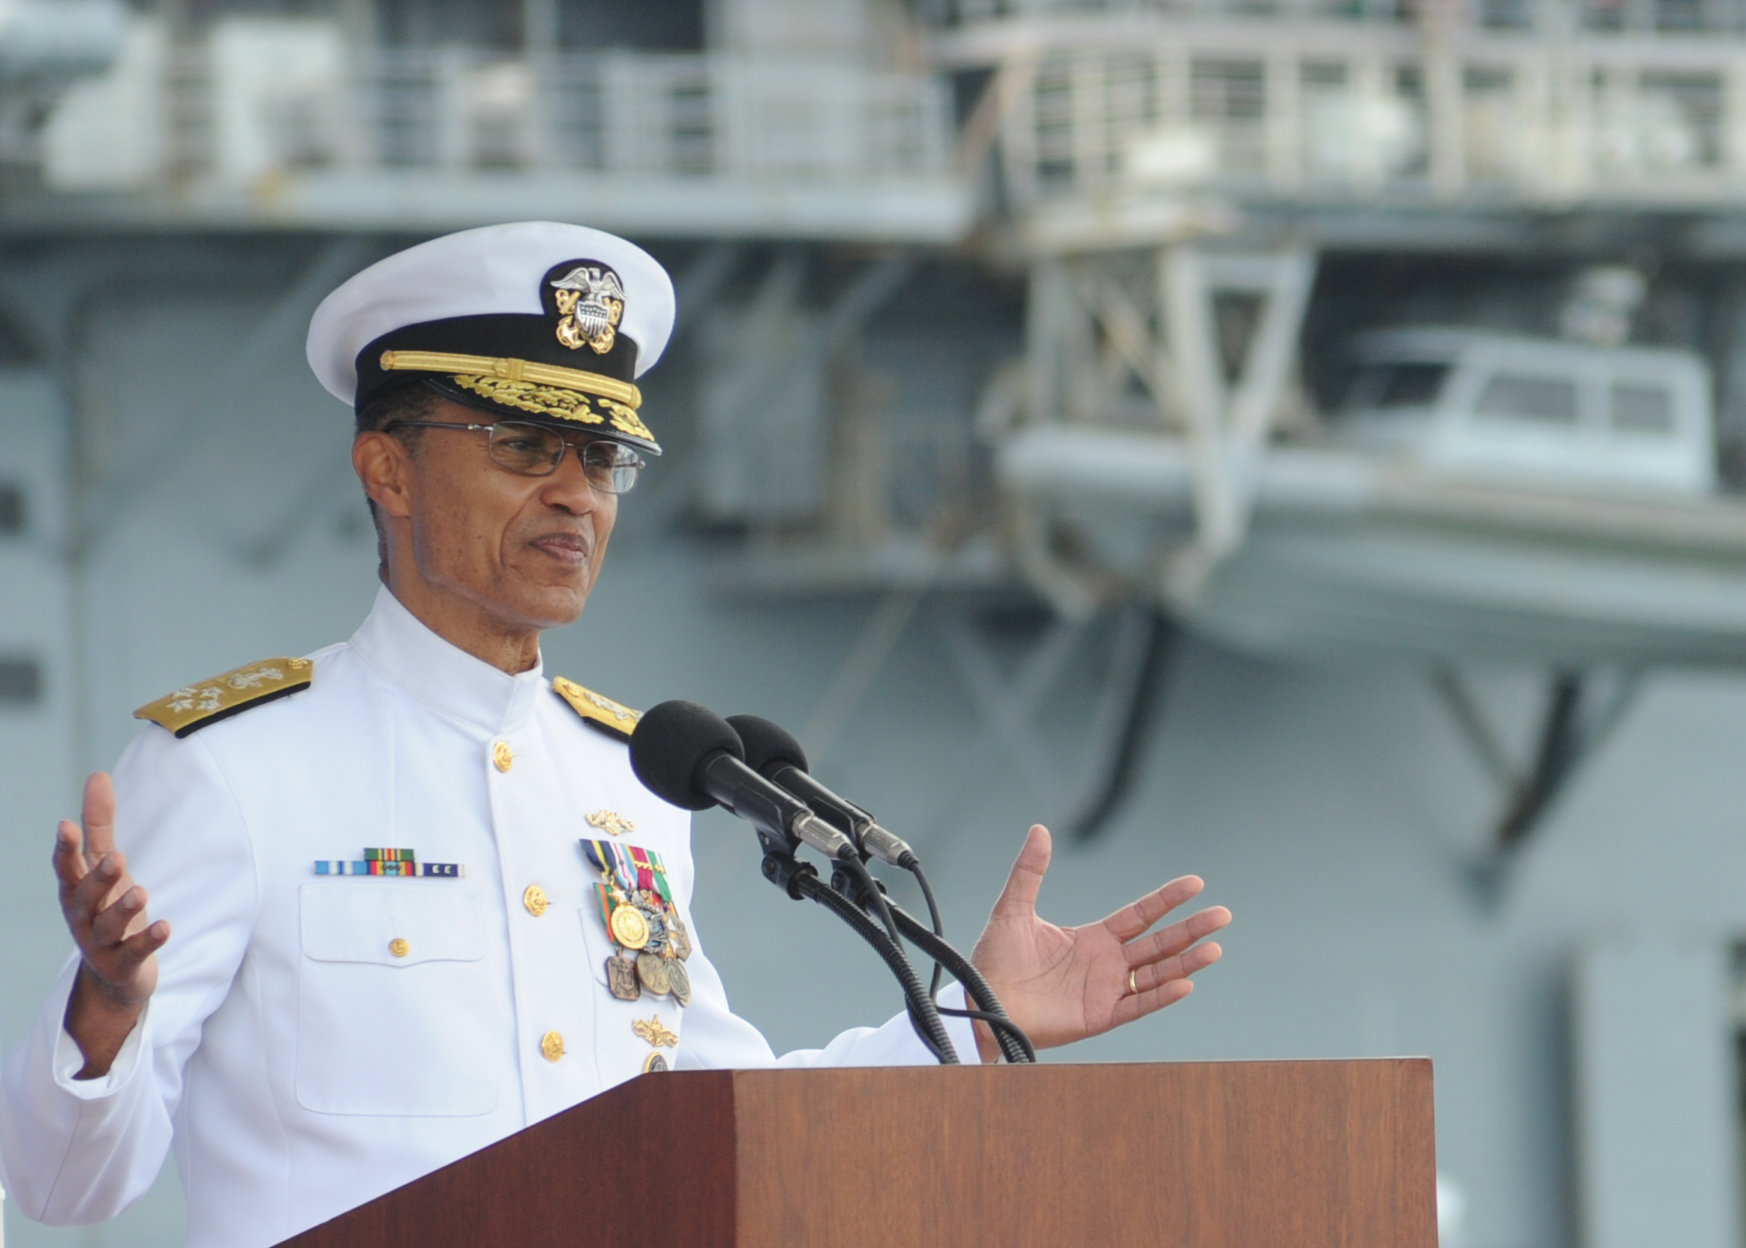 Adm. Cecil D. Haney, commander of U.S. Strategic Command, delivers remarks as guest speaker during a change of command ceremony for Commander, Submarine Forces aboard the attack submarine USS Newport News (SSN-750) on Sept. 11, 2015. US Navy Photo